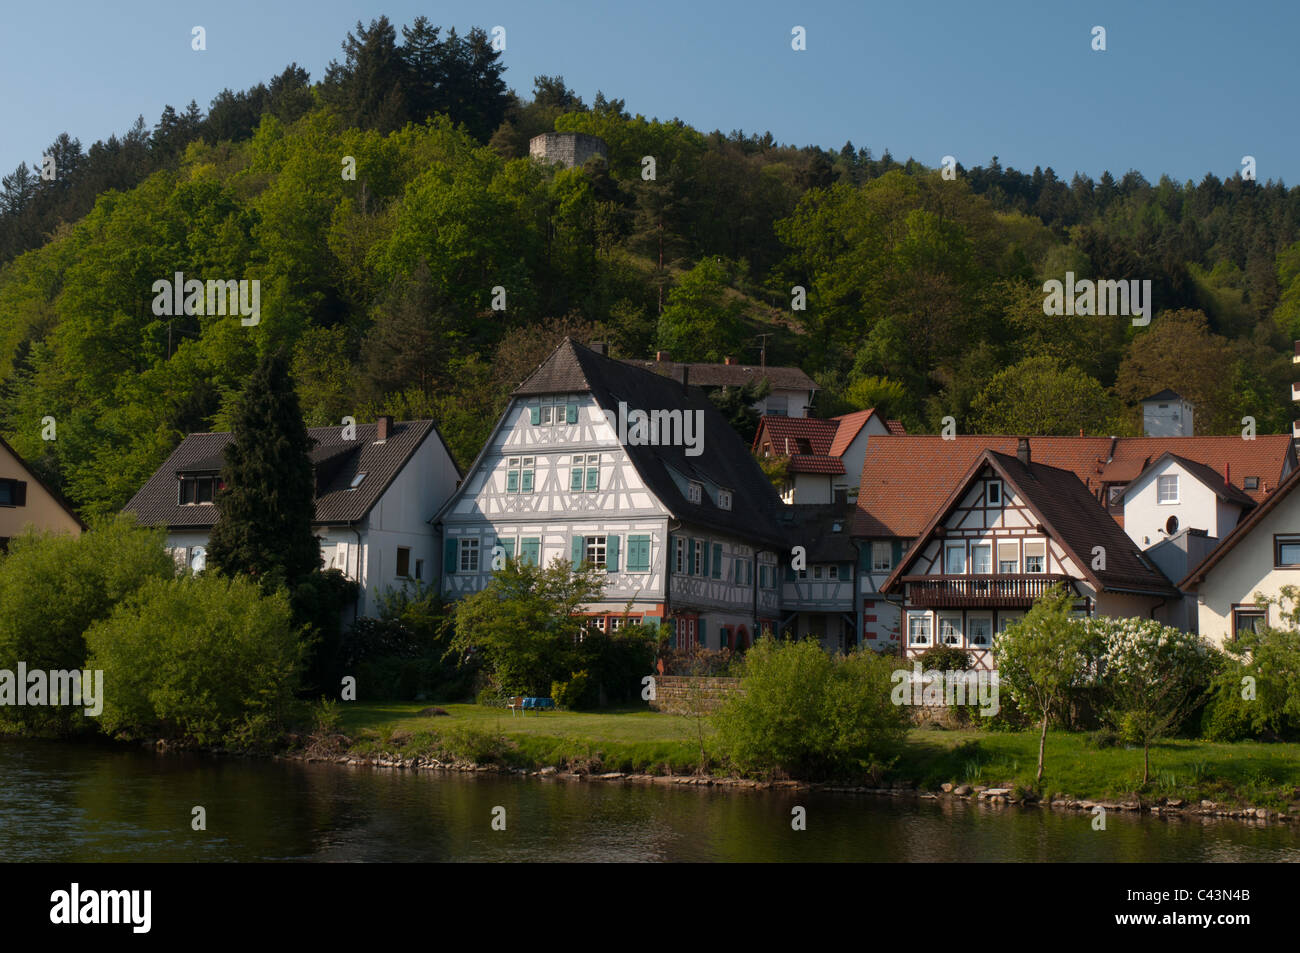 Murgvalley near Gernsbach with old magistrate, Black Forest, Baden-Württemberg, Germany, Europe - Stock Image